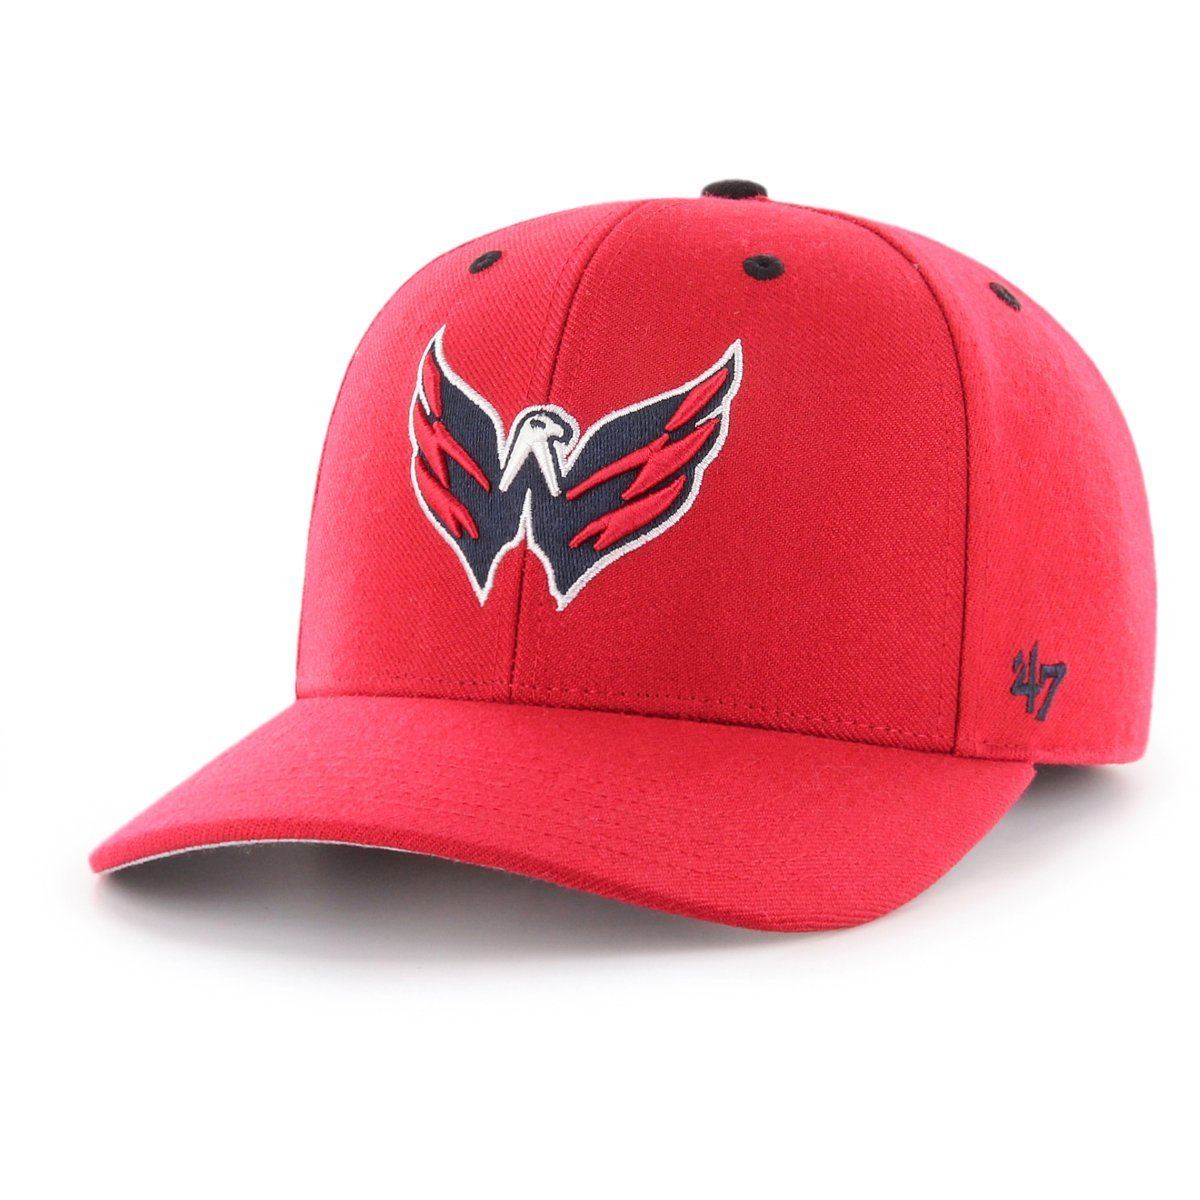 47 Brand Gorra Ajustable - Audible Washington Capitals Rojo ...